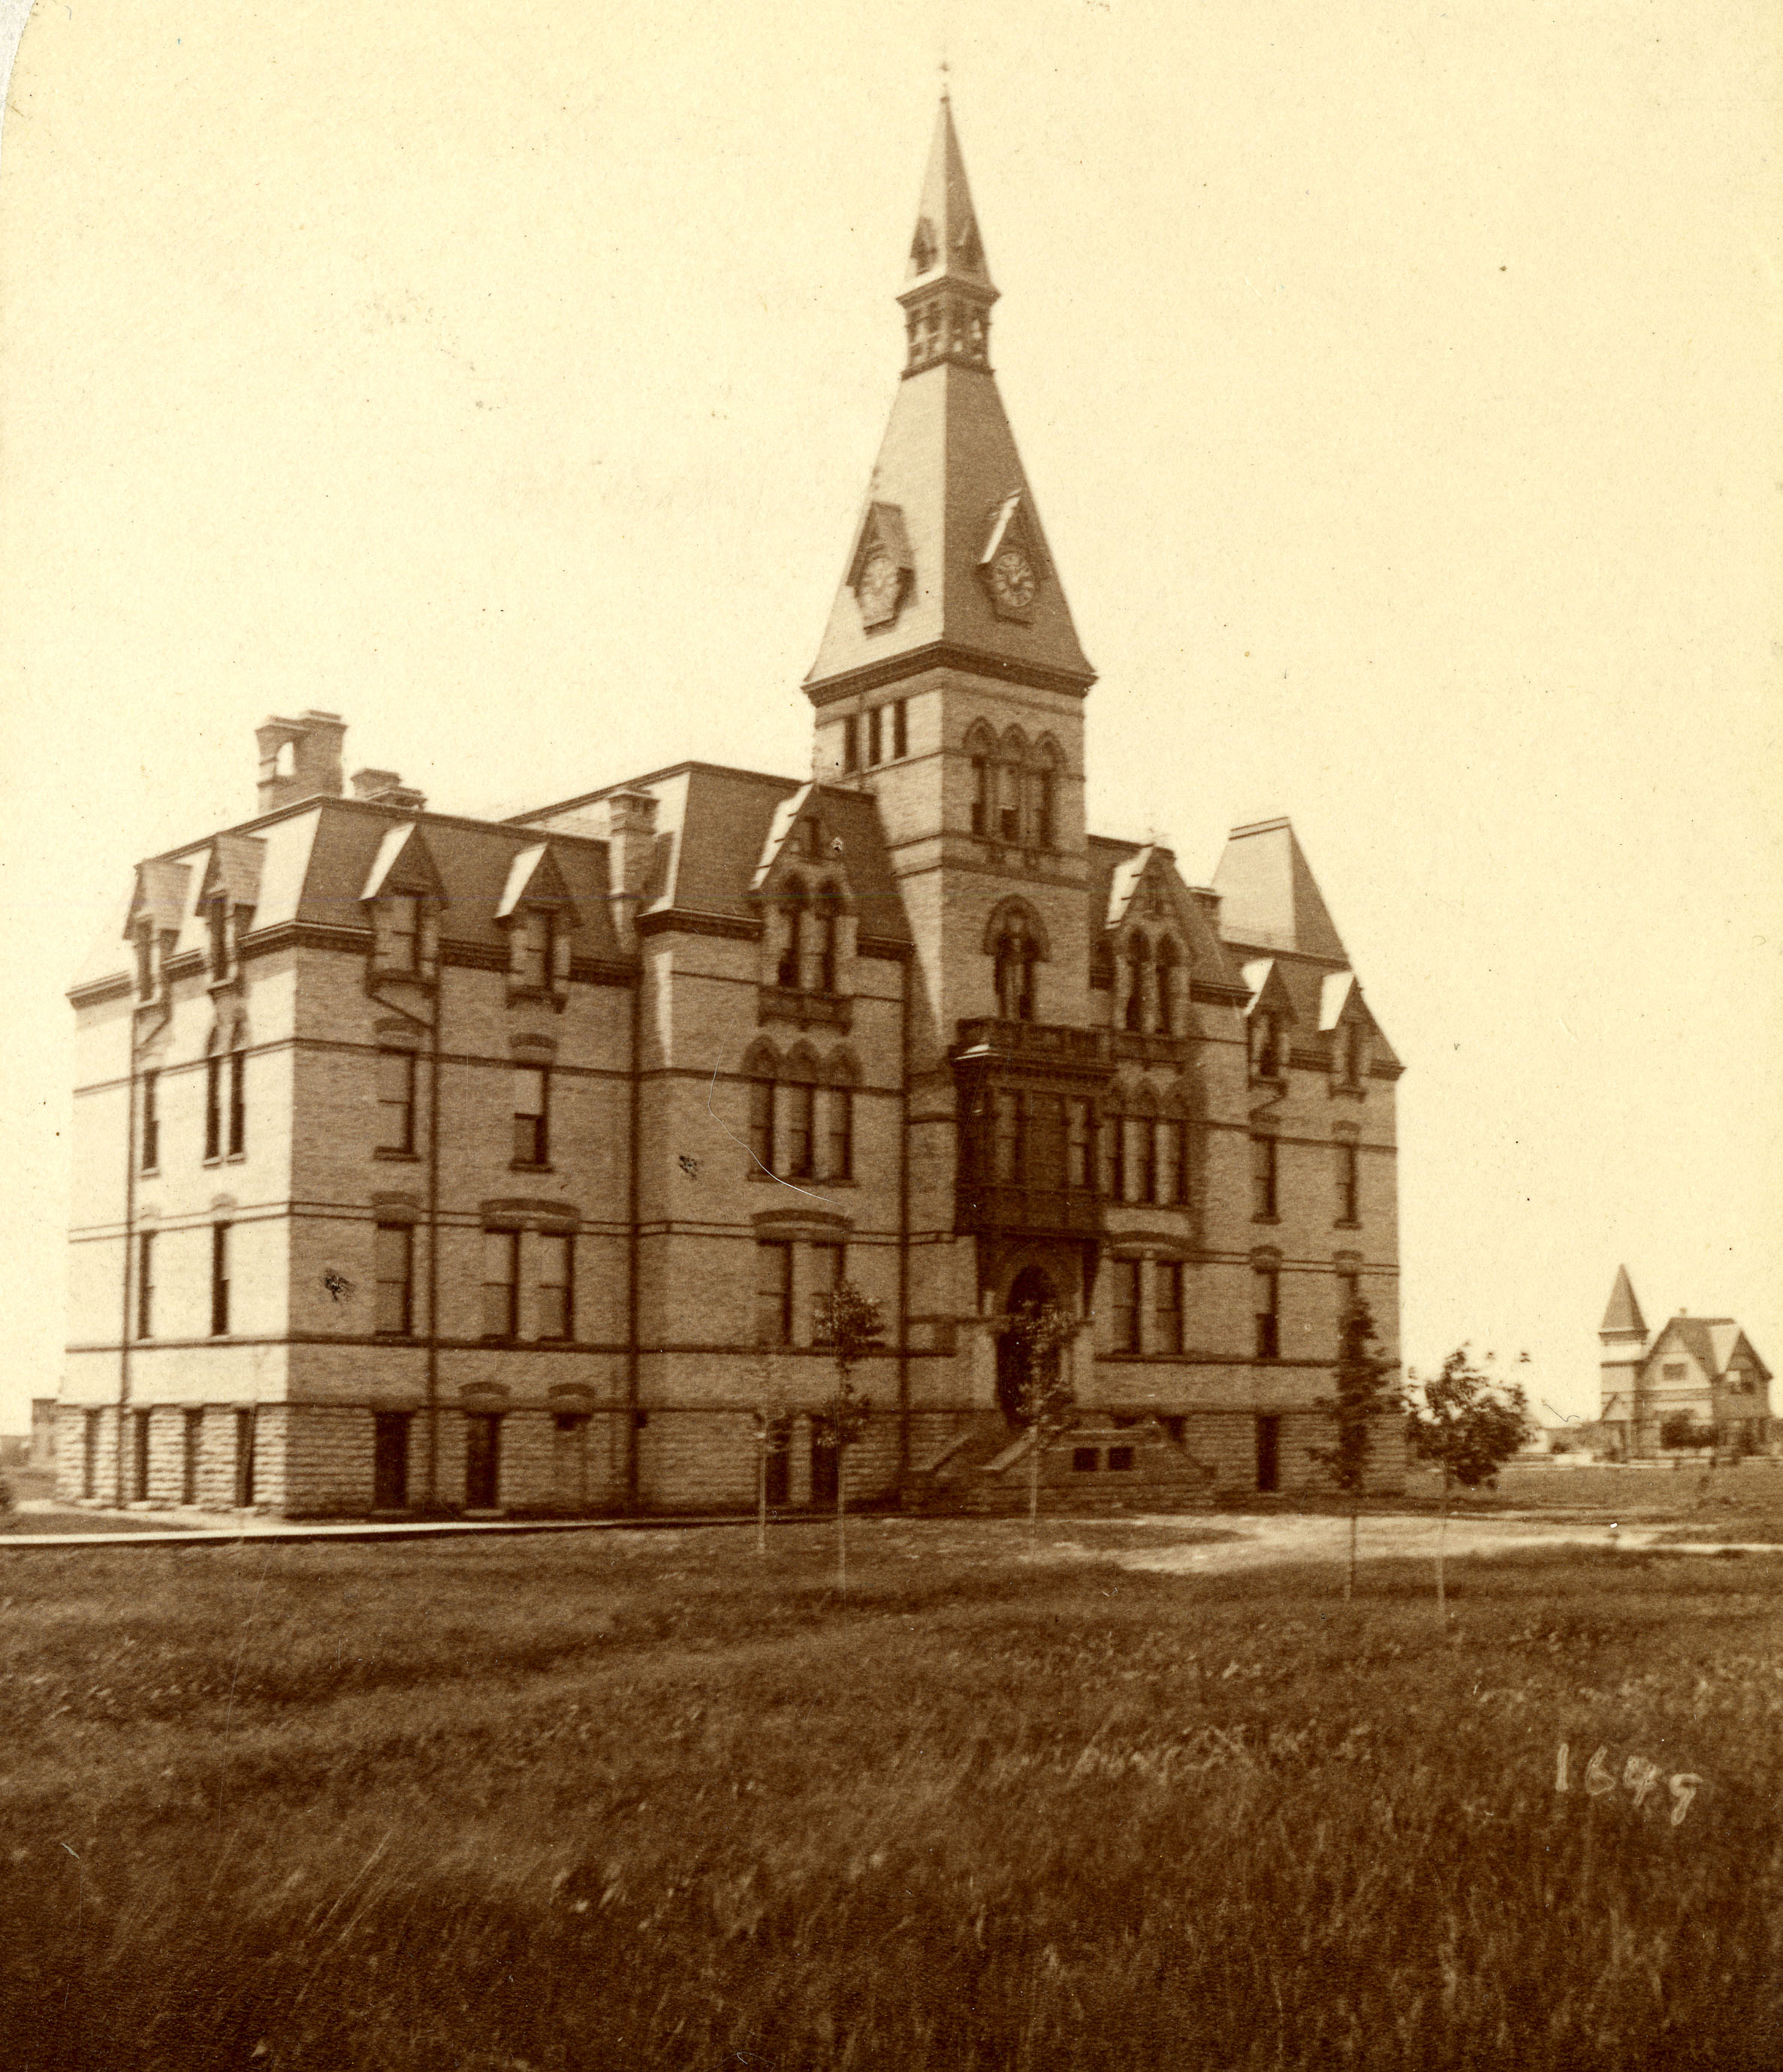 Old_Main_1885_HU_archives_no14337